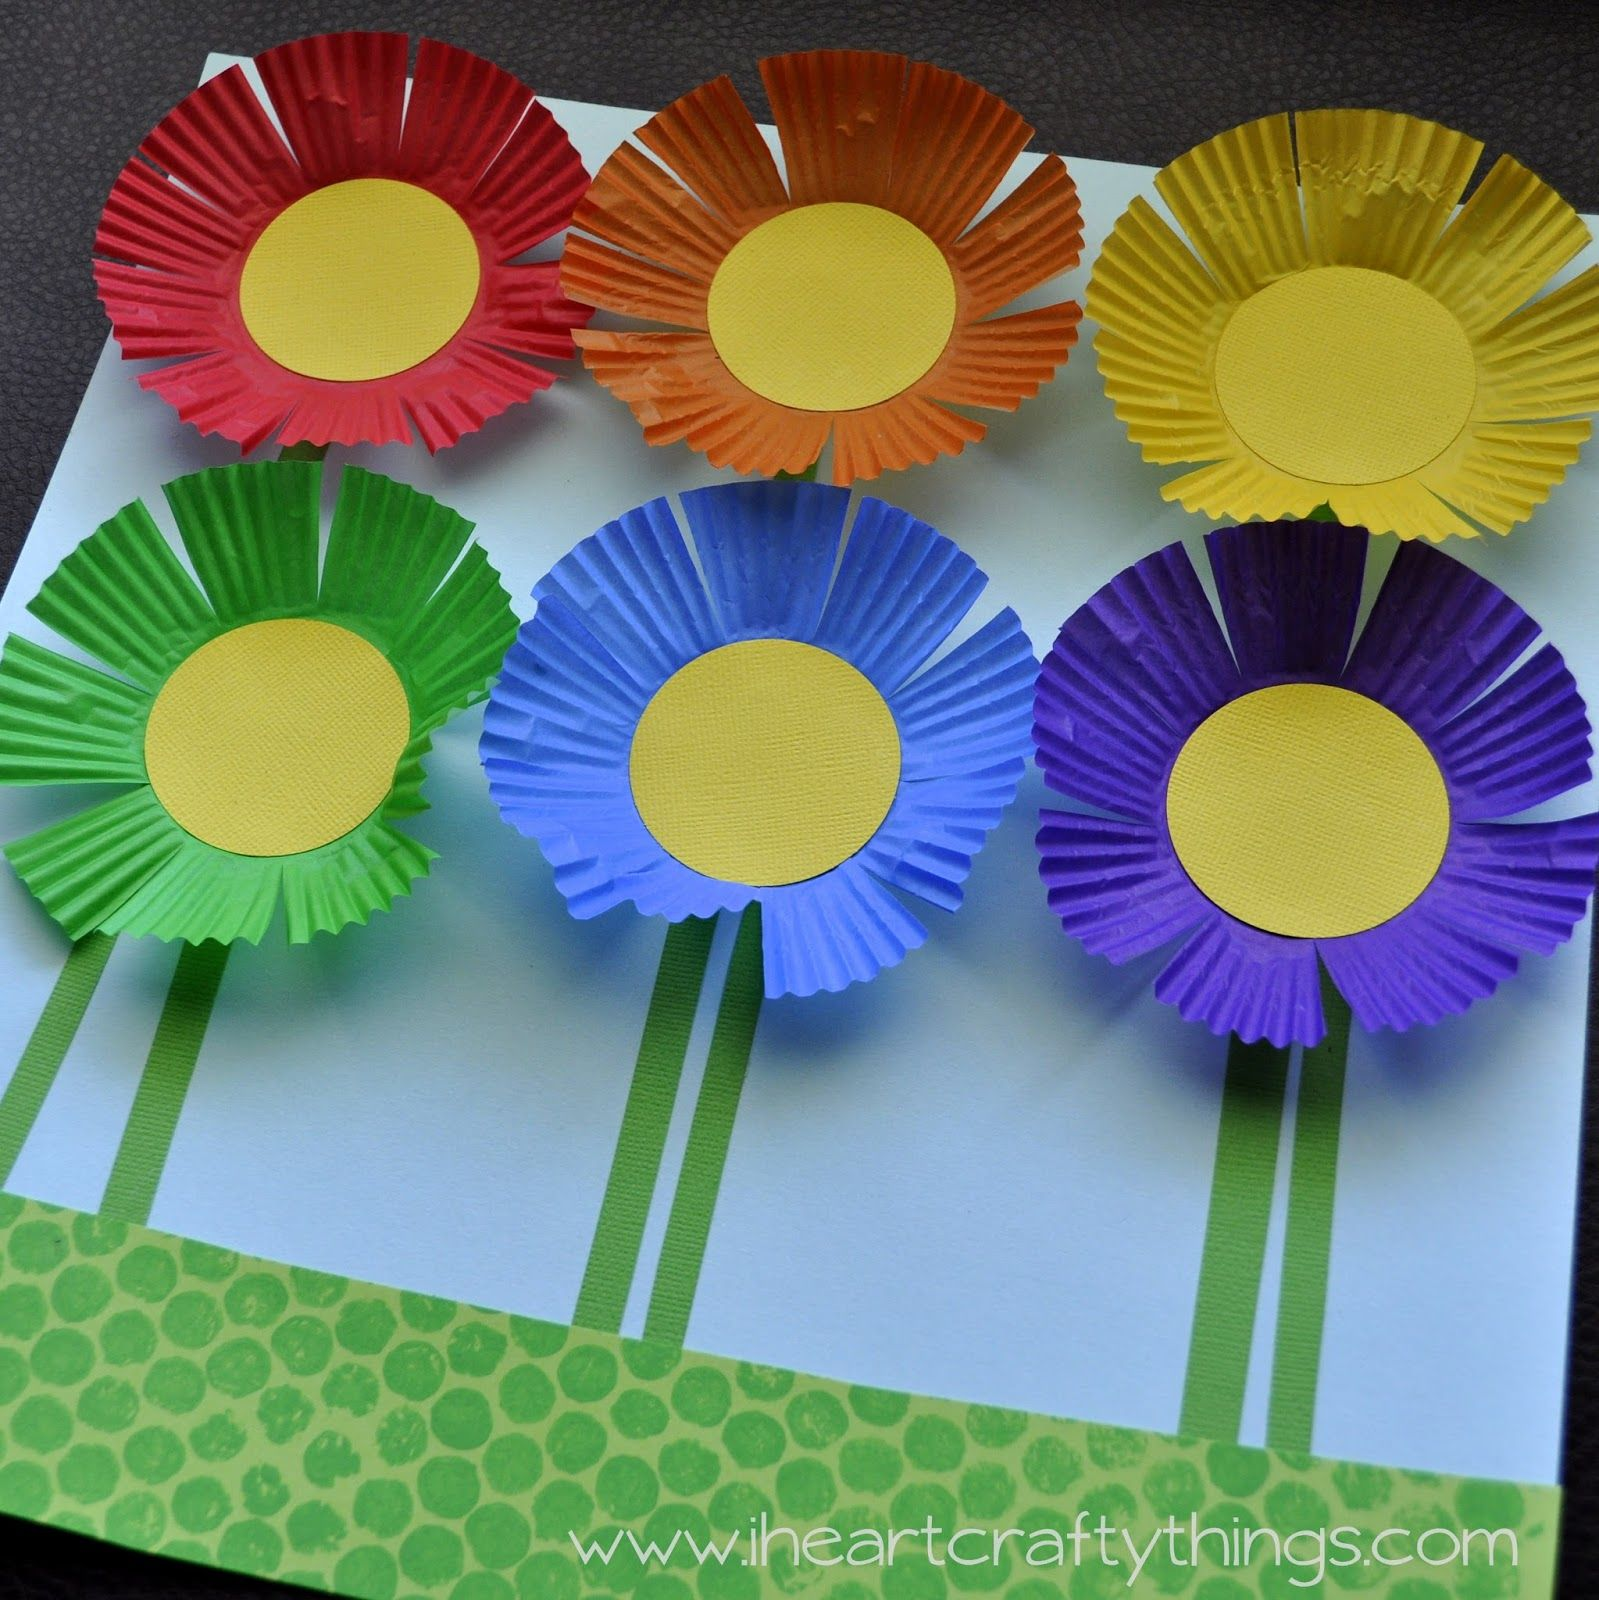 Uncategorized Paper Craft Work For Kids planting a rainbow flower craft crafts kids collage i heart crafty things using paint